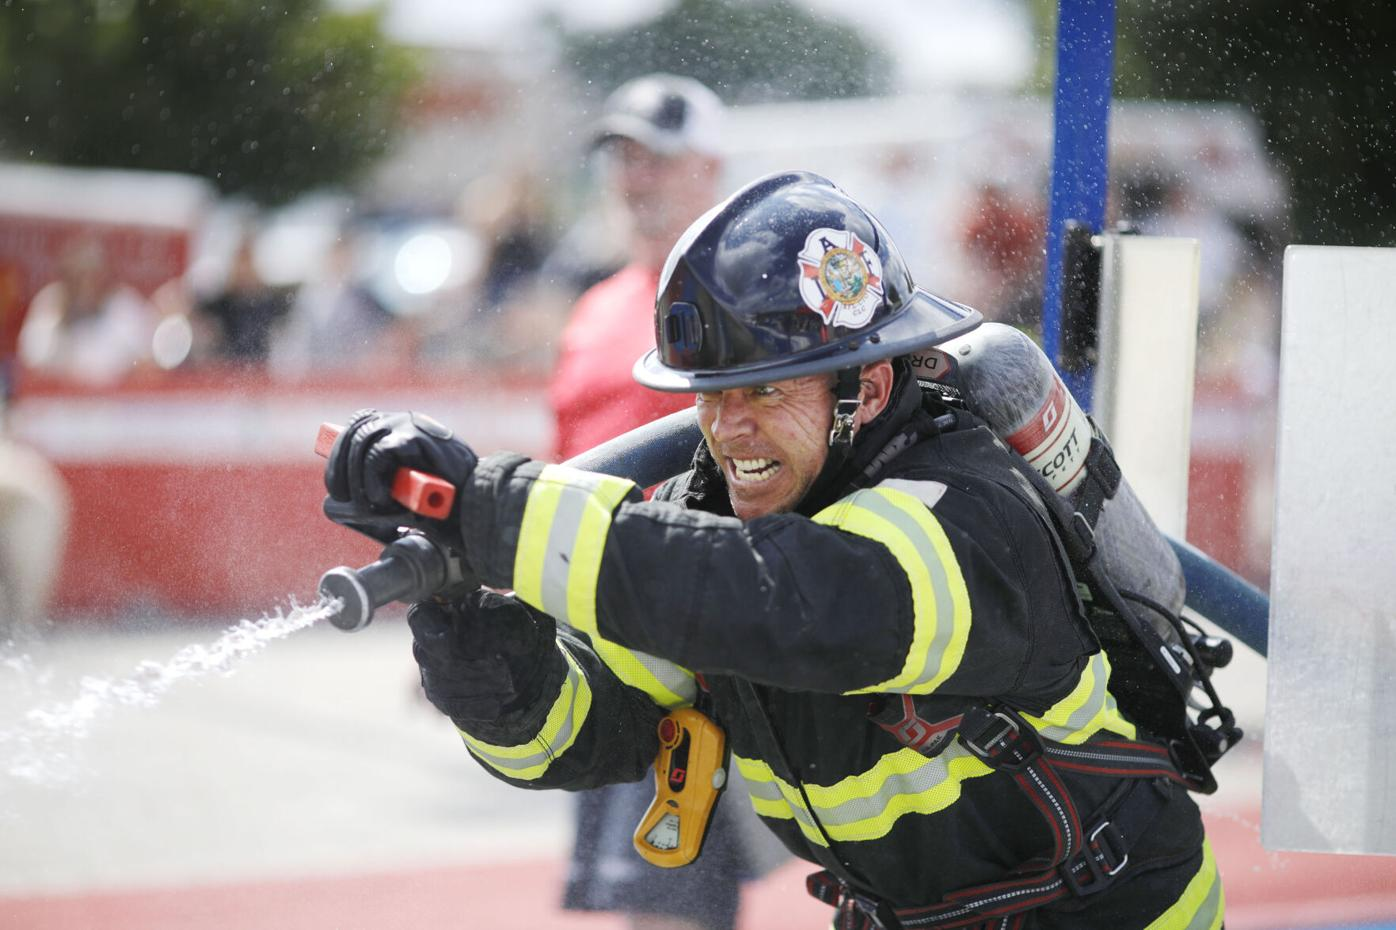 Firefighter grits teeth and sprays fire hose